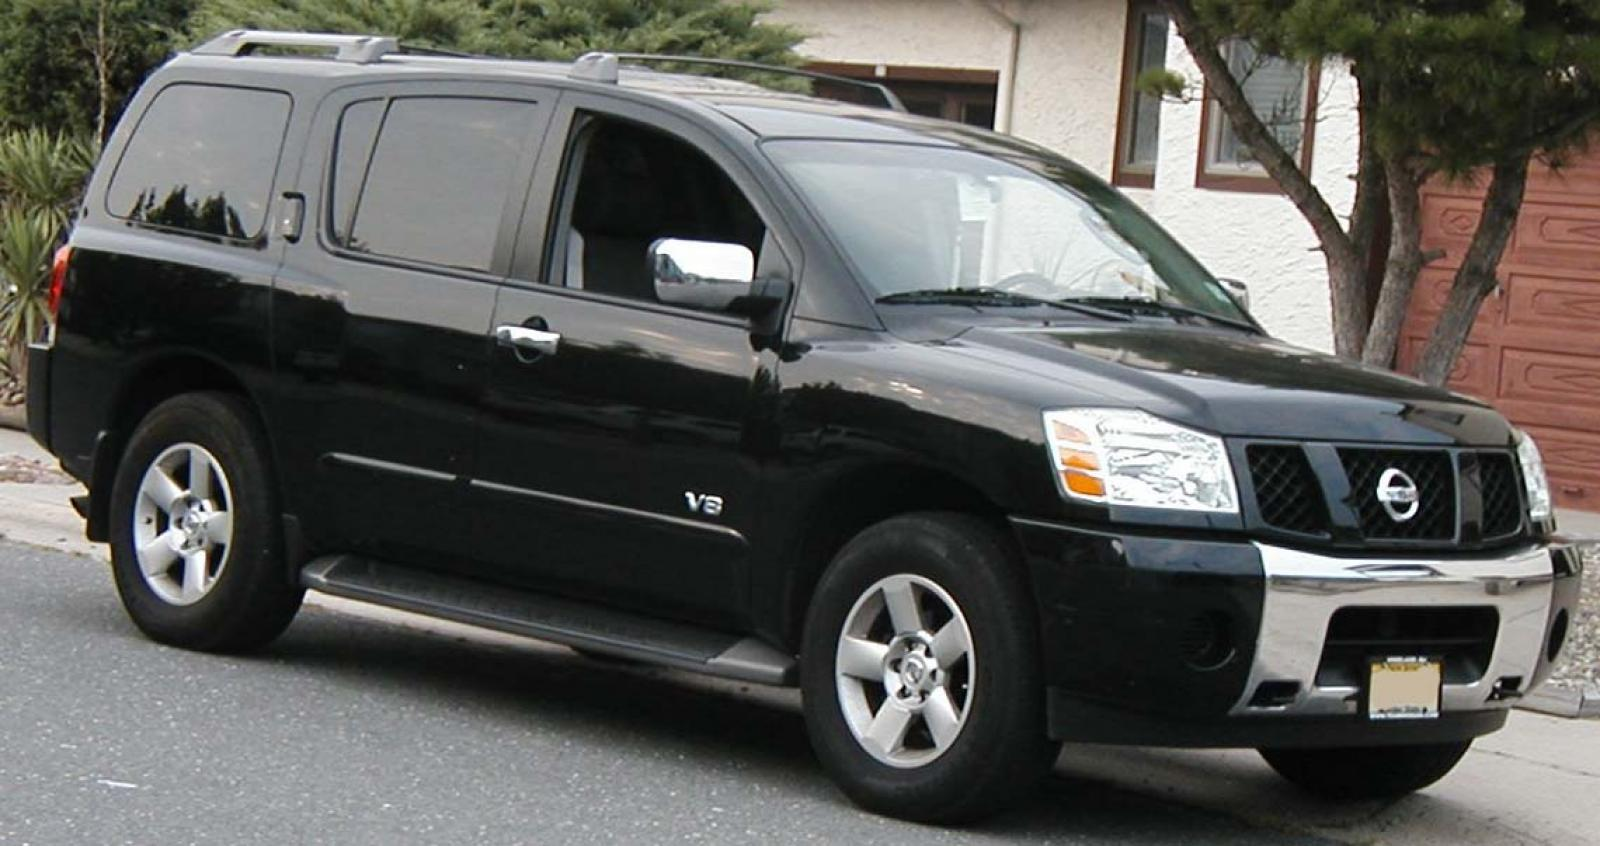 2005 nissan armada information and photos zombiedrive 800 1024 1280 1600 origin 2005 nissan armada vanachro Images